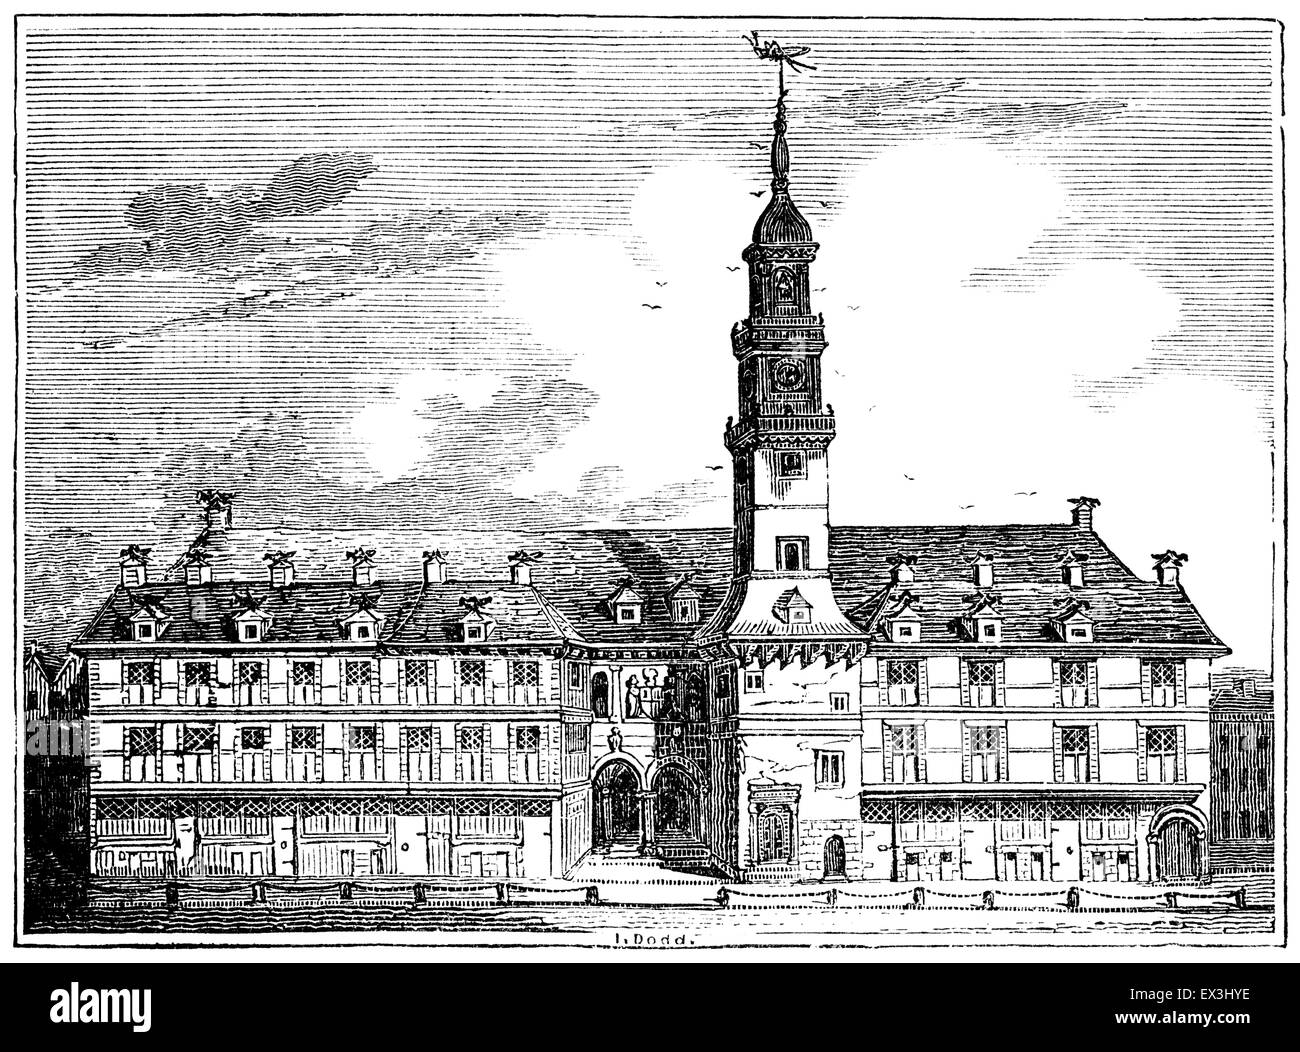 Vintage engraving: the original London Royal Exchange of Gresham, built in 1571 and destroyed by fire in 1666. - Stock Image